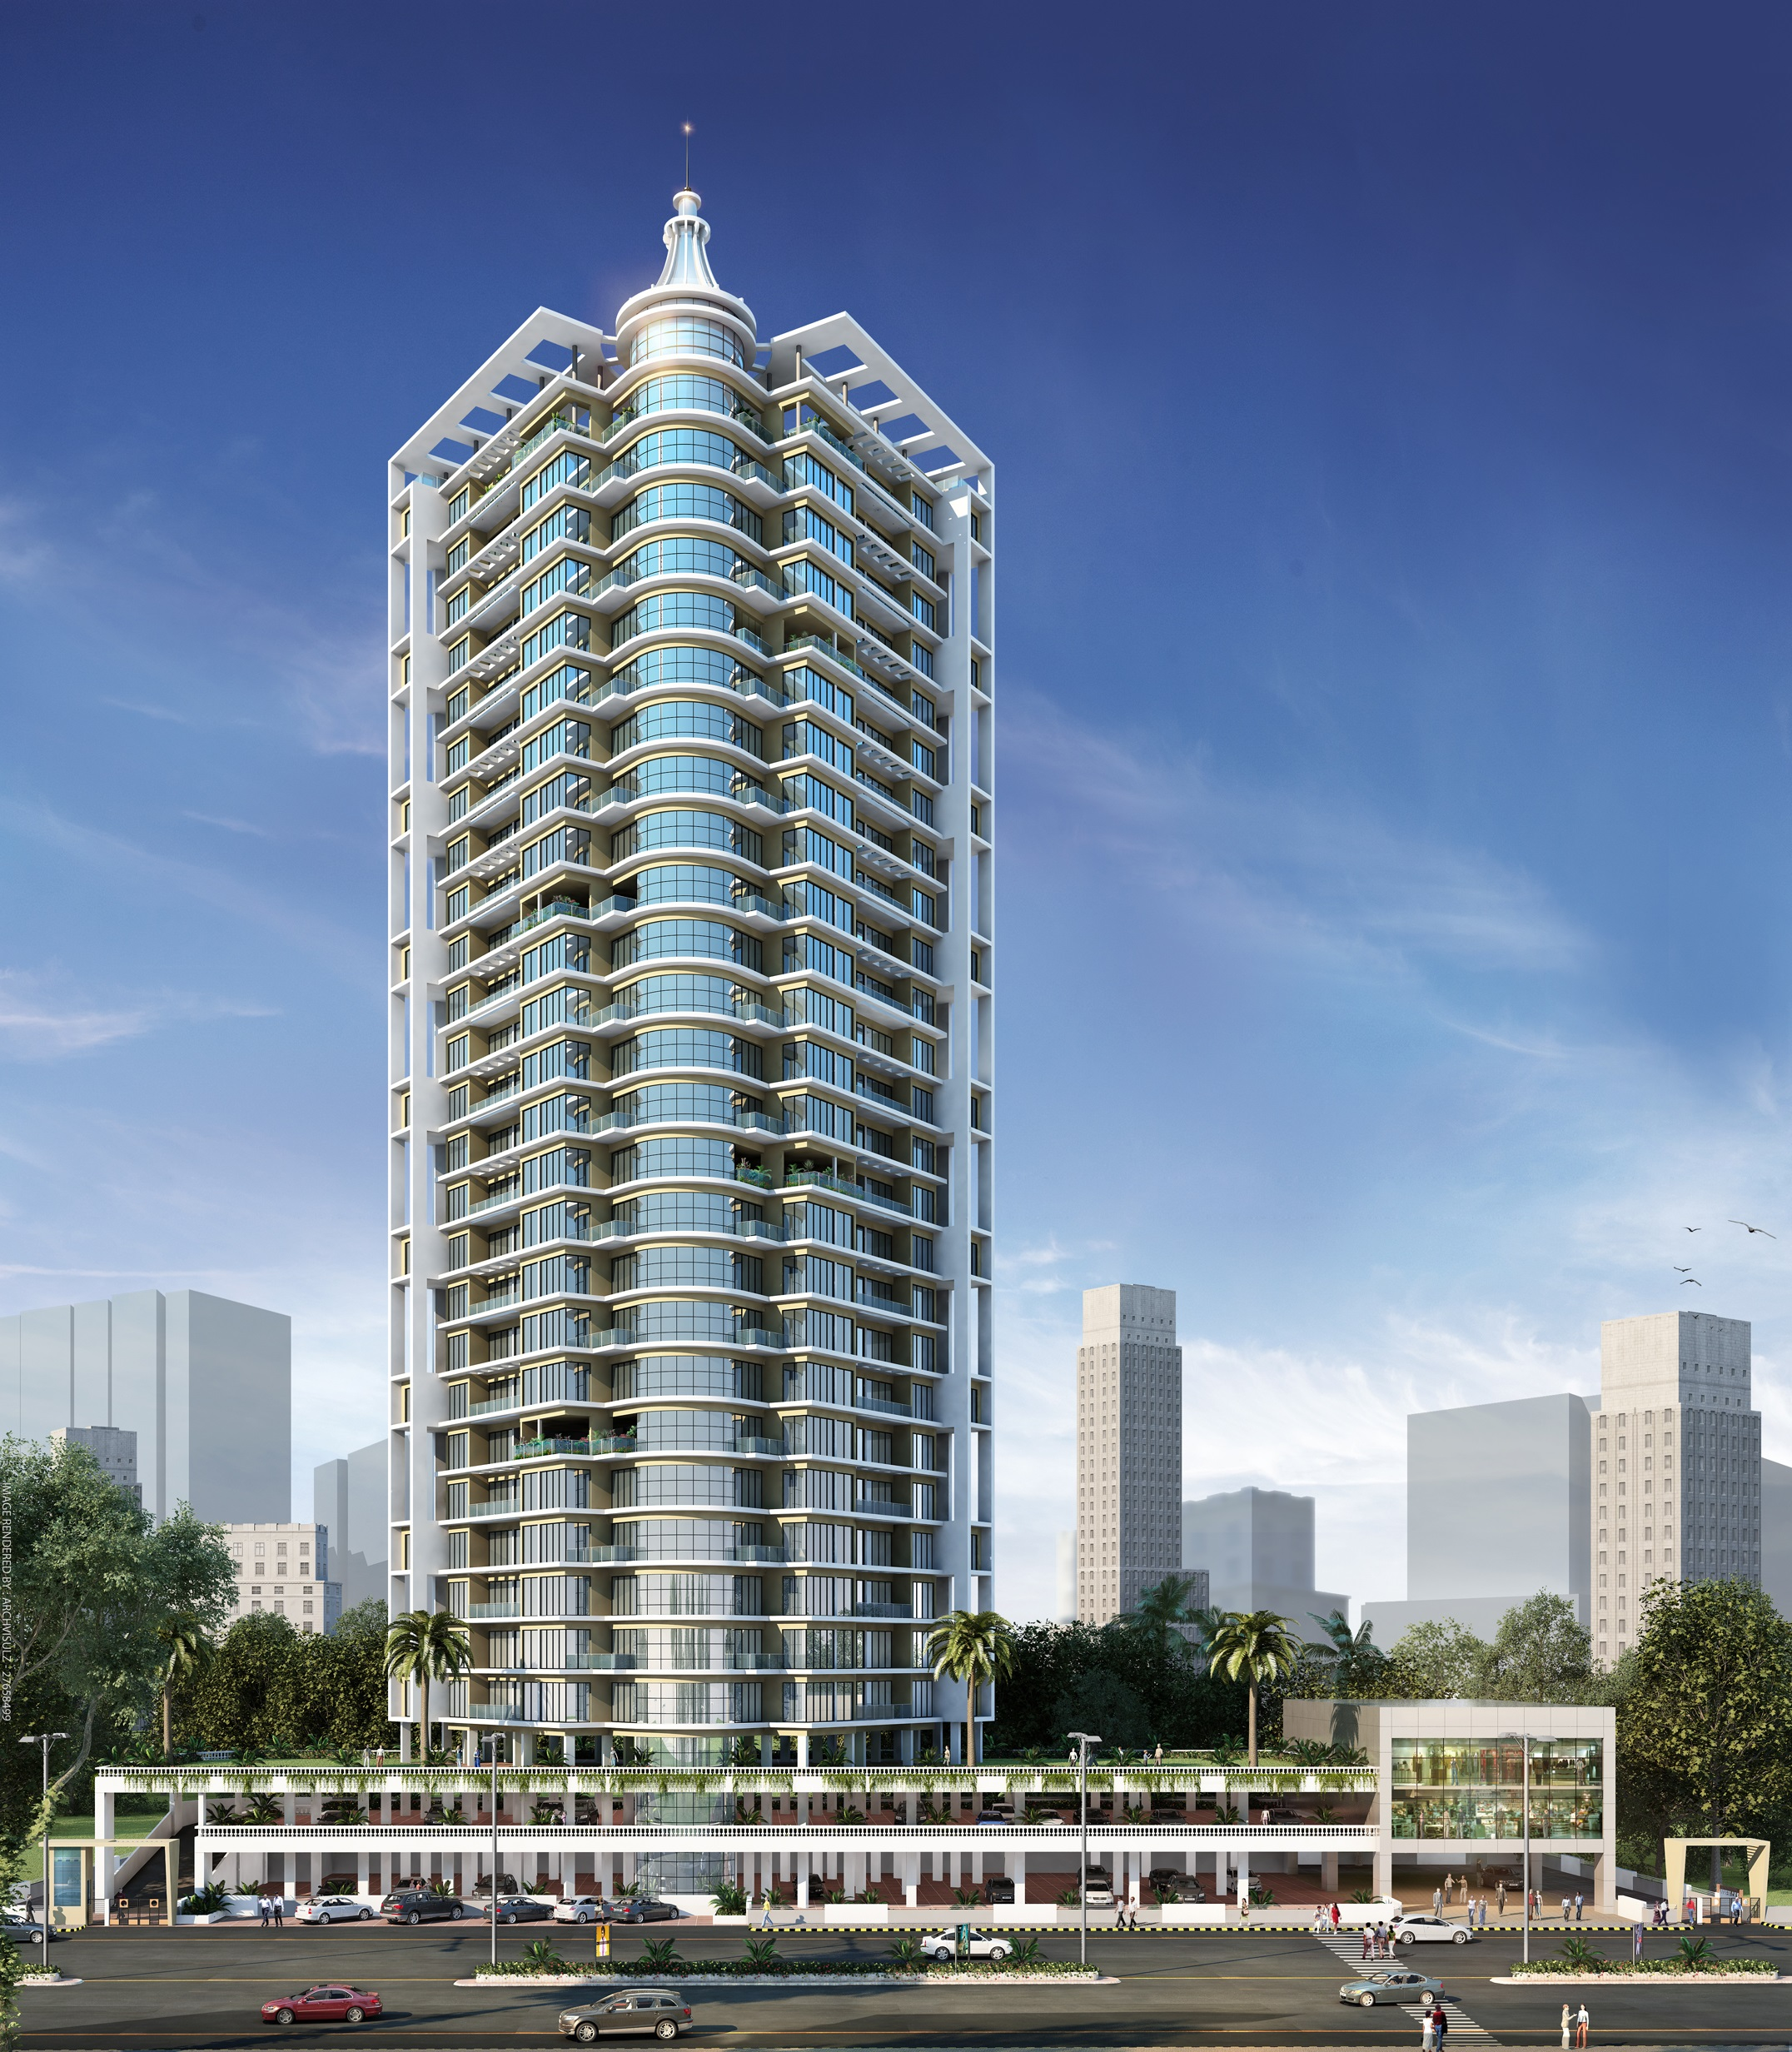 Archstone Infinity Tower Artistic Elevation Image